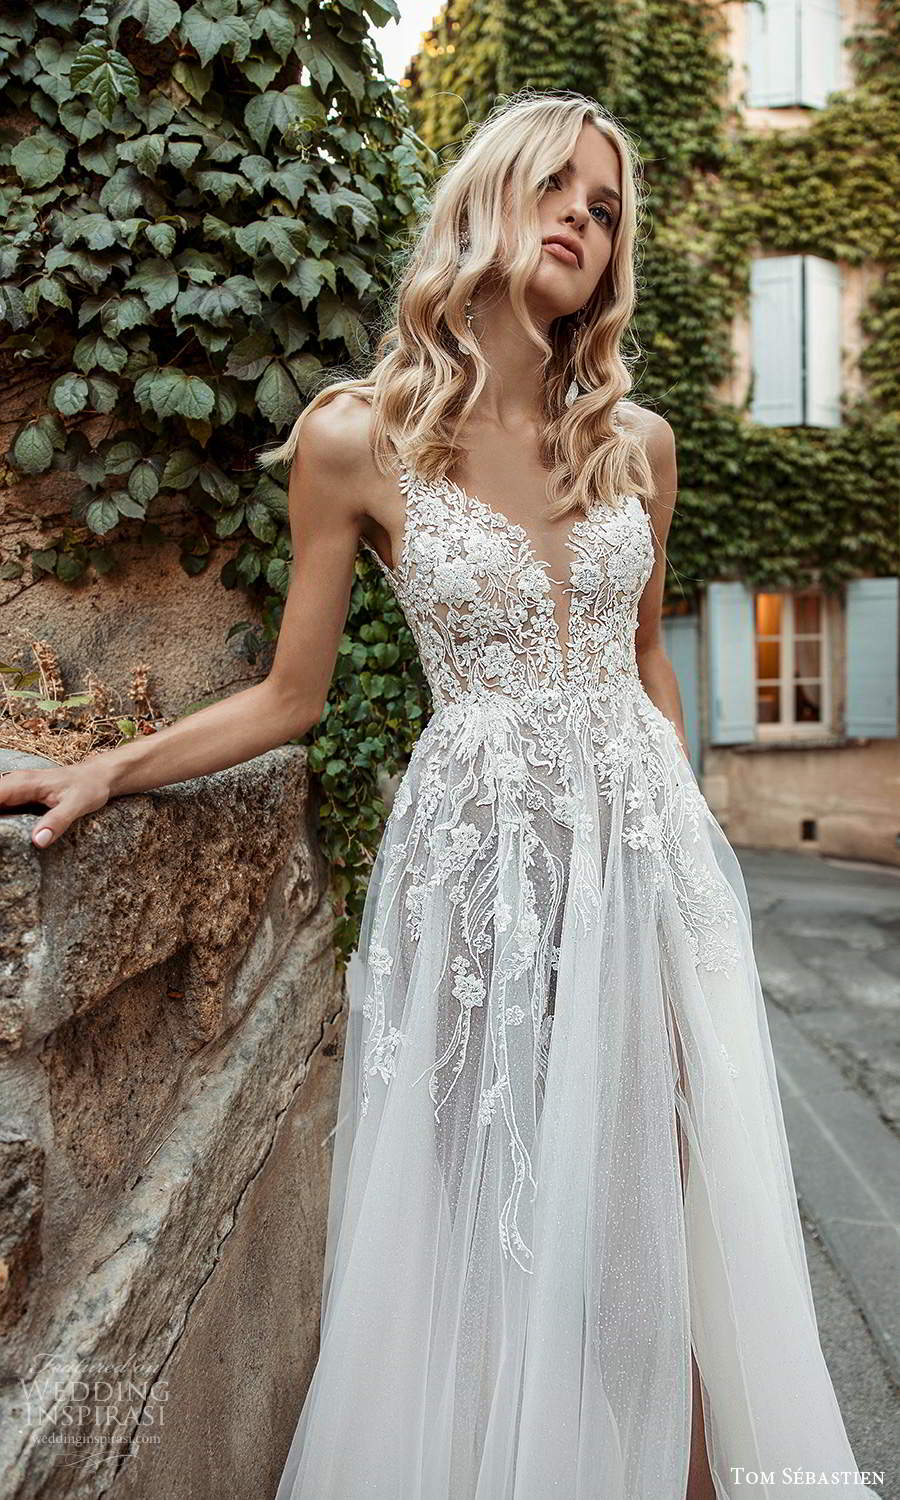 tom sebastien 2021 bridal provence sleeveless straps plunging v neckline embellished lace neckline a line ball gown wedding dress slit skirt chapel train (12) mv